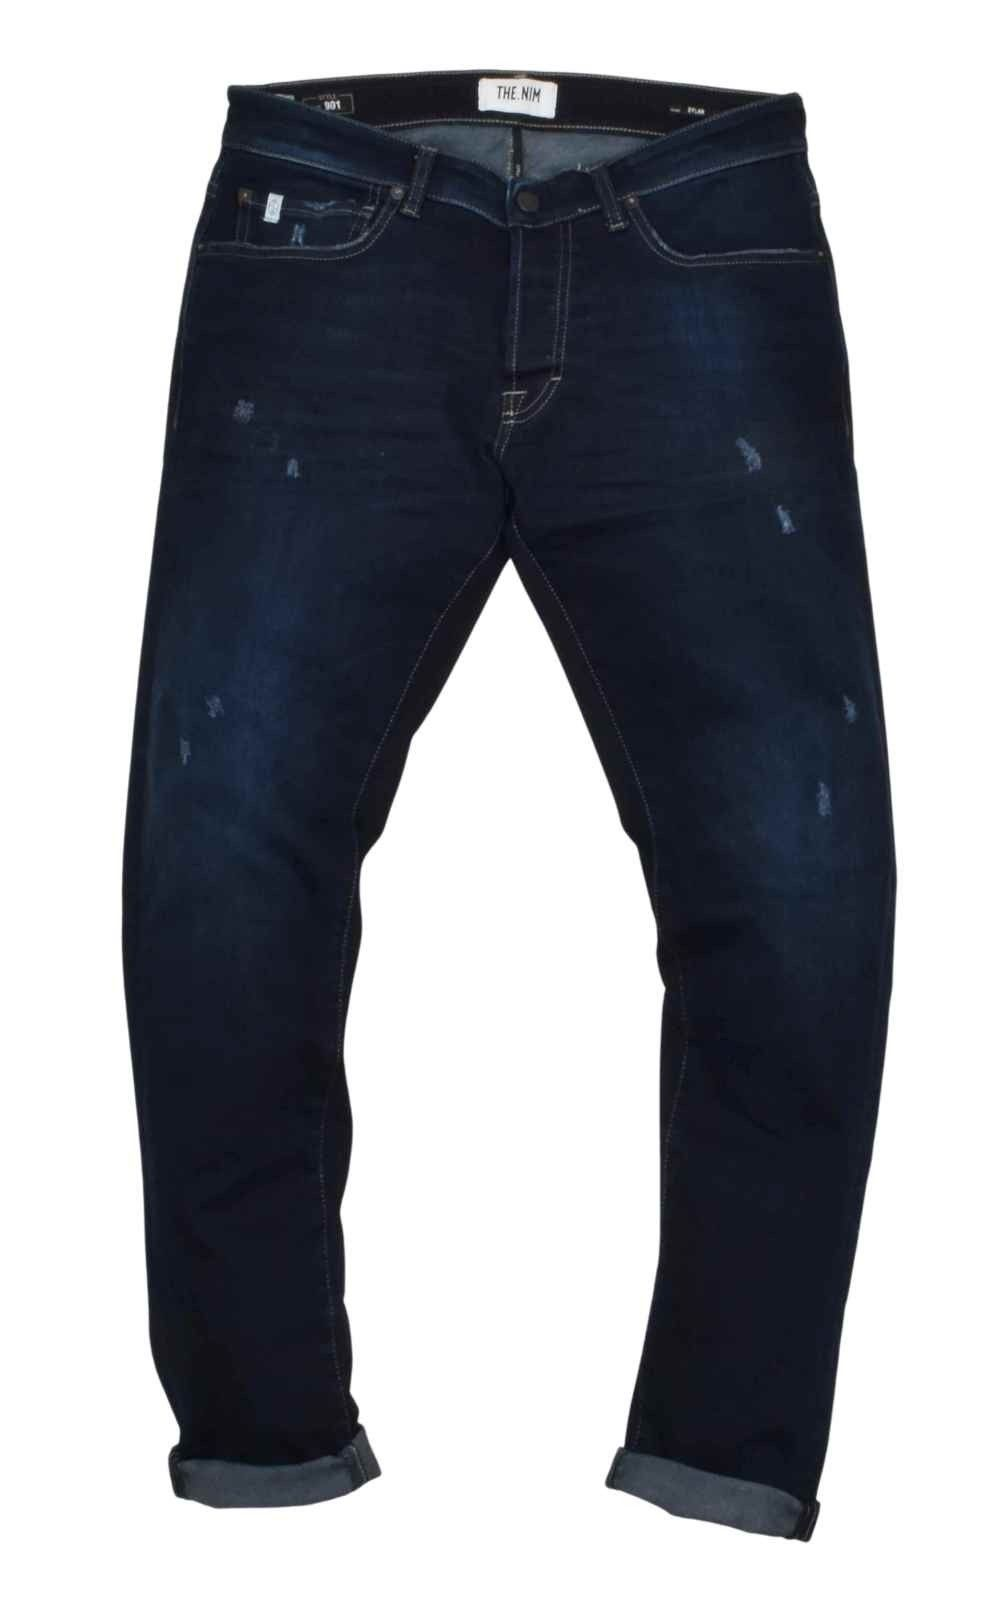 THE.NIM - Herren Hosen - Dylan Man Jeans Slim Fit - Repaired Dark